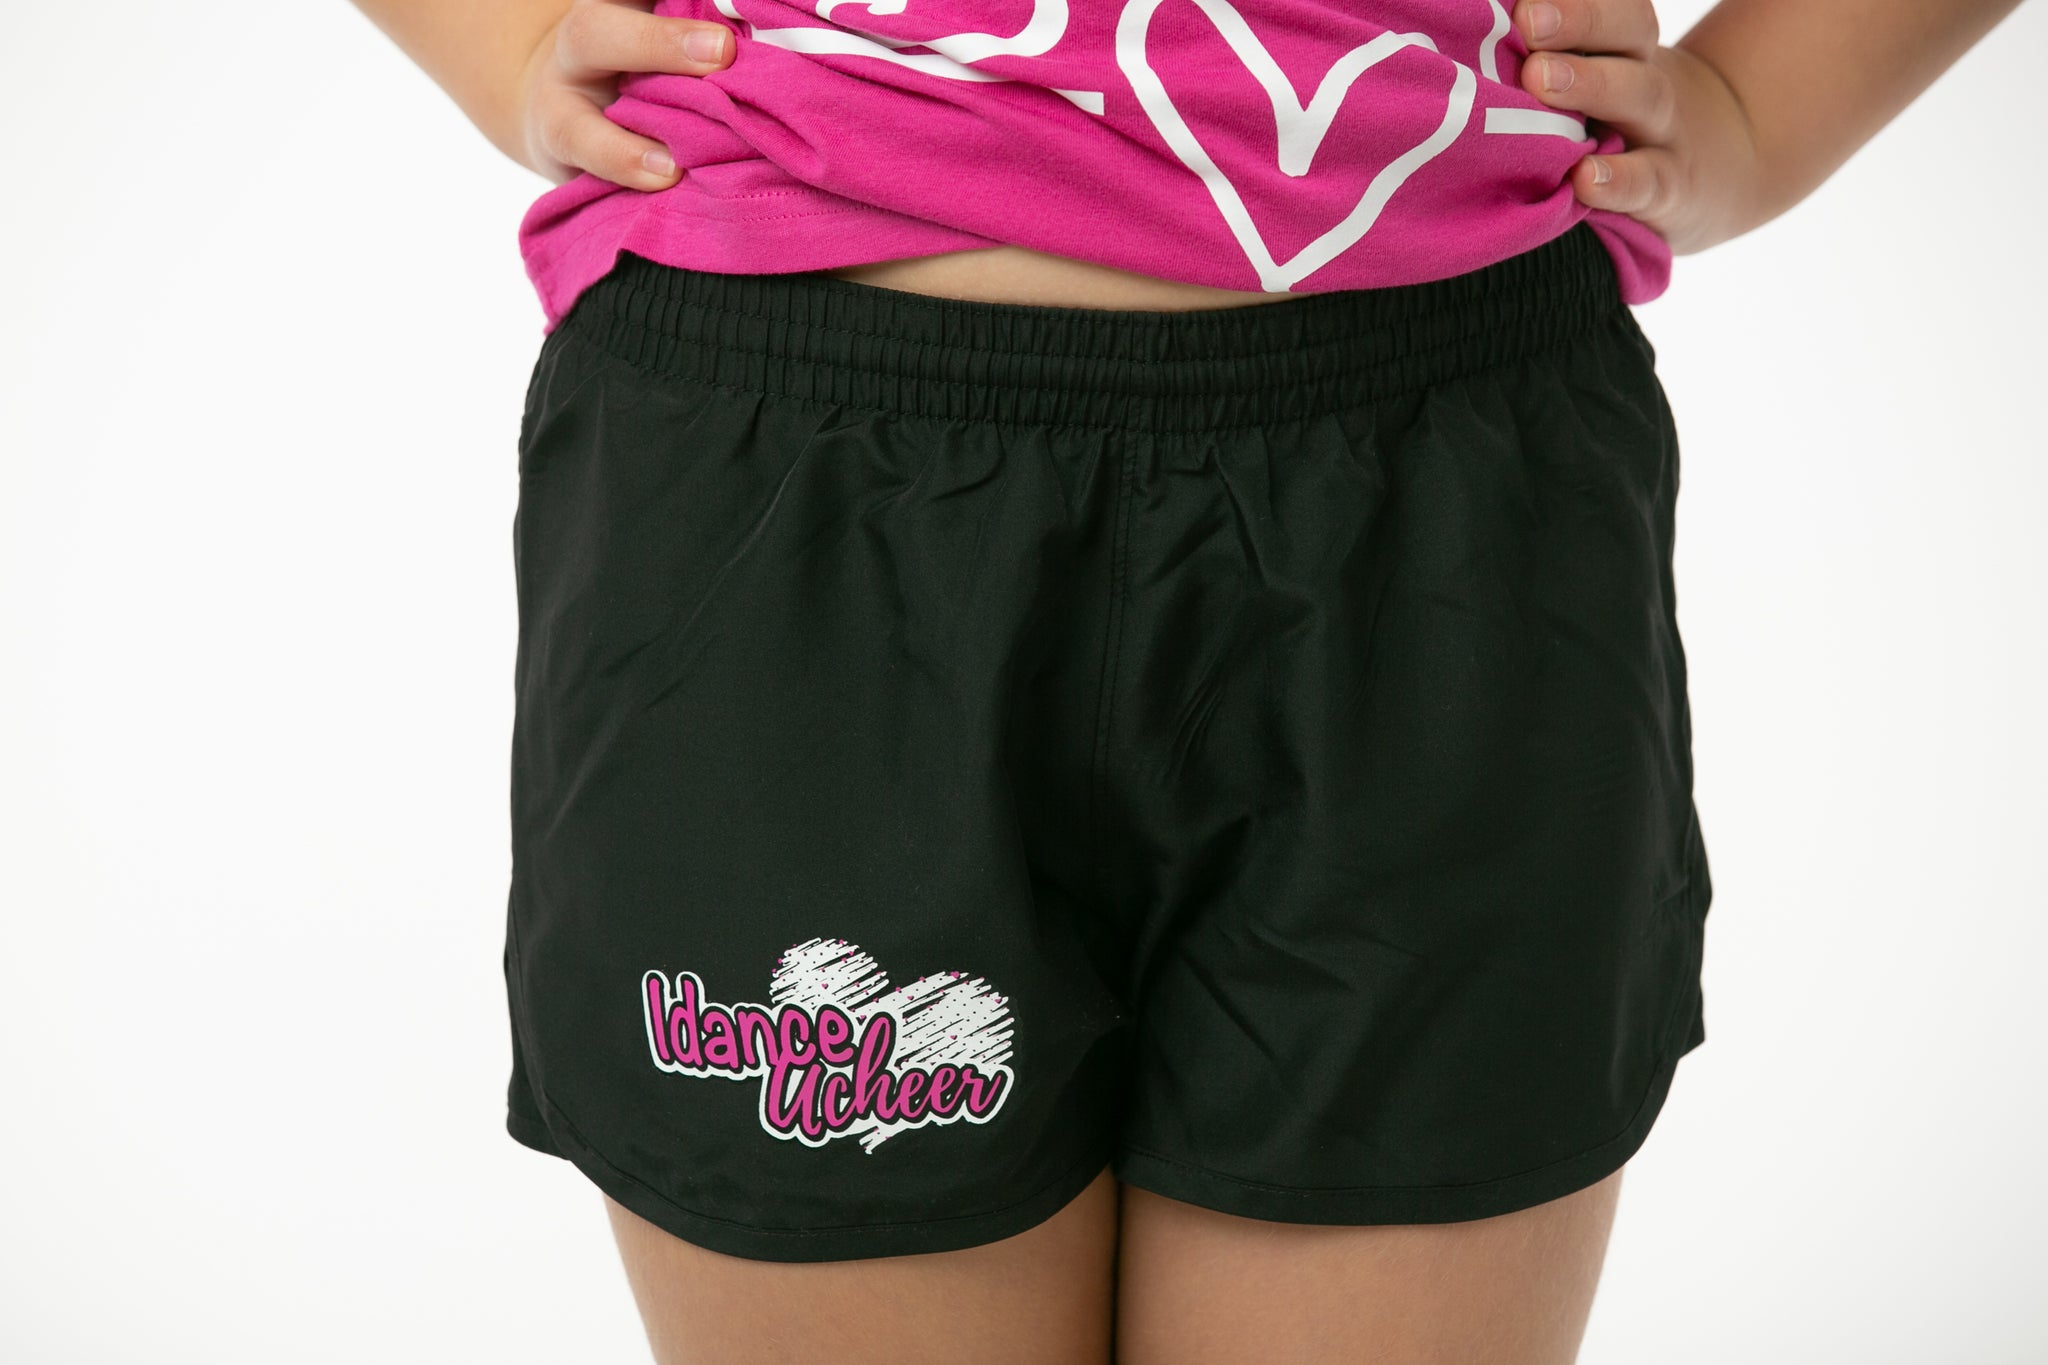 IdanceUcheer Girls Wayfarer Black Shorts